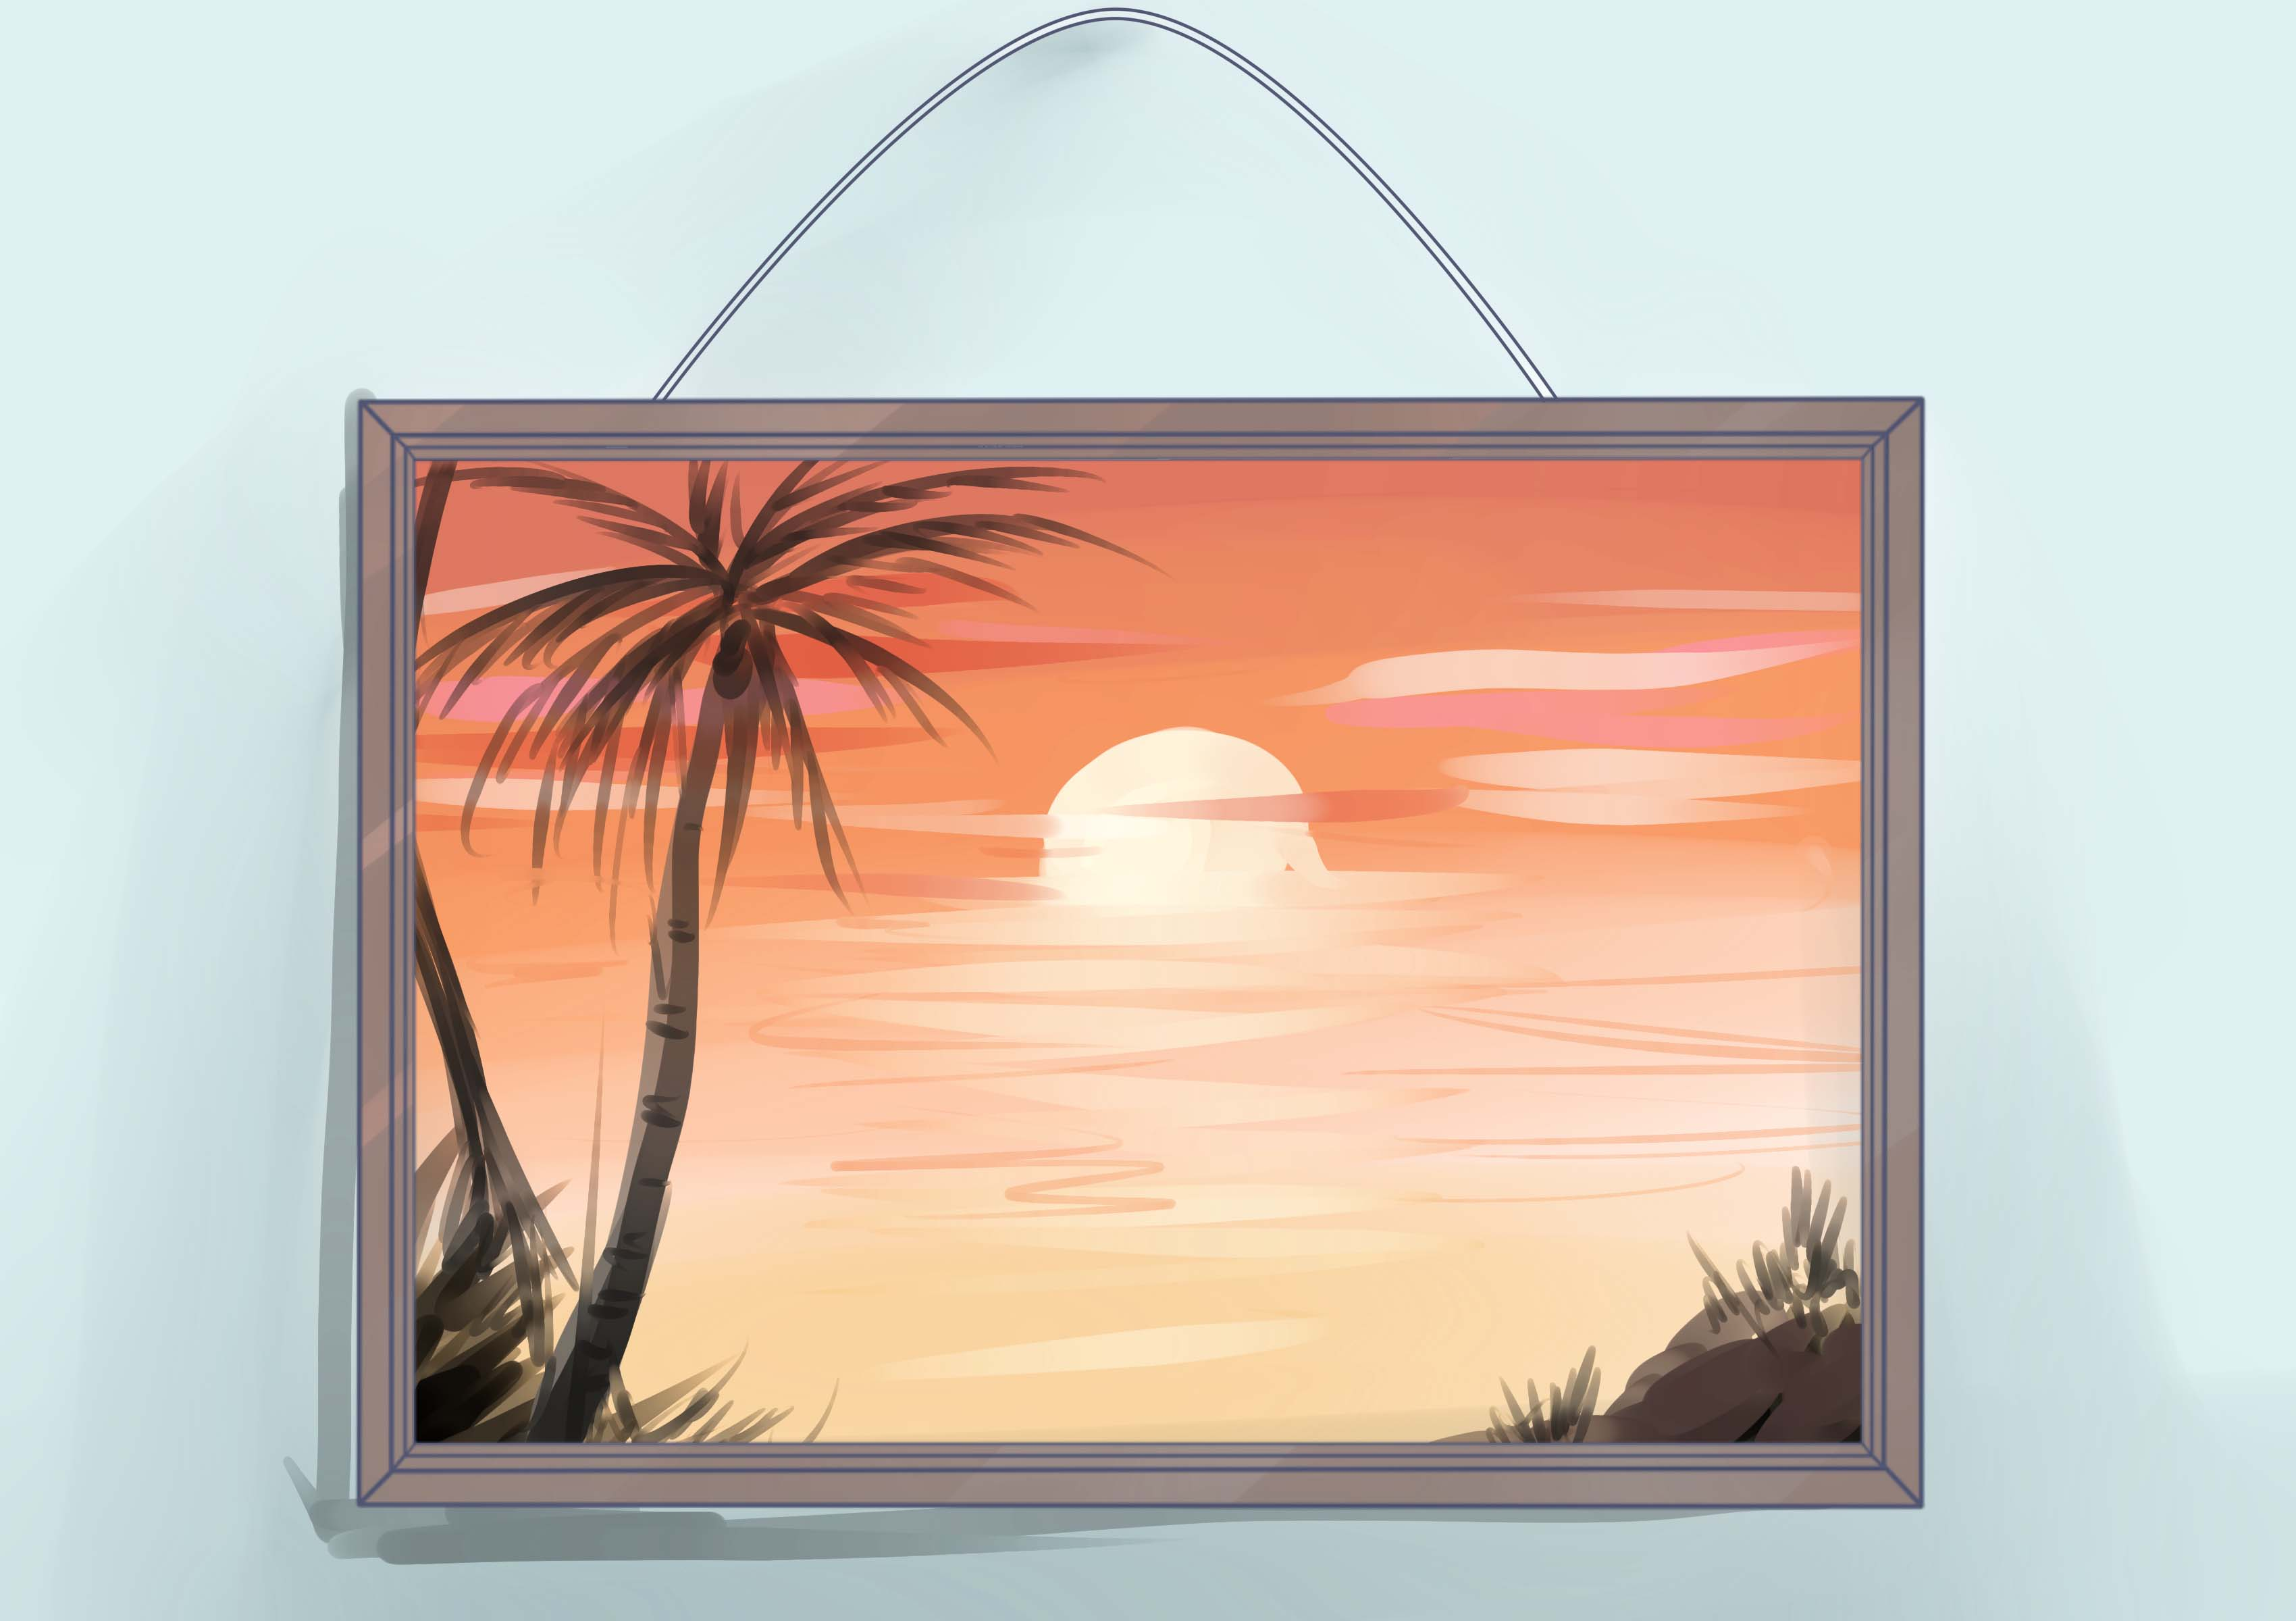 Art clipart oil painting. How to frame an